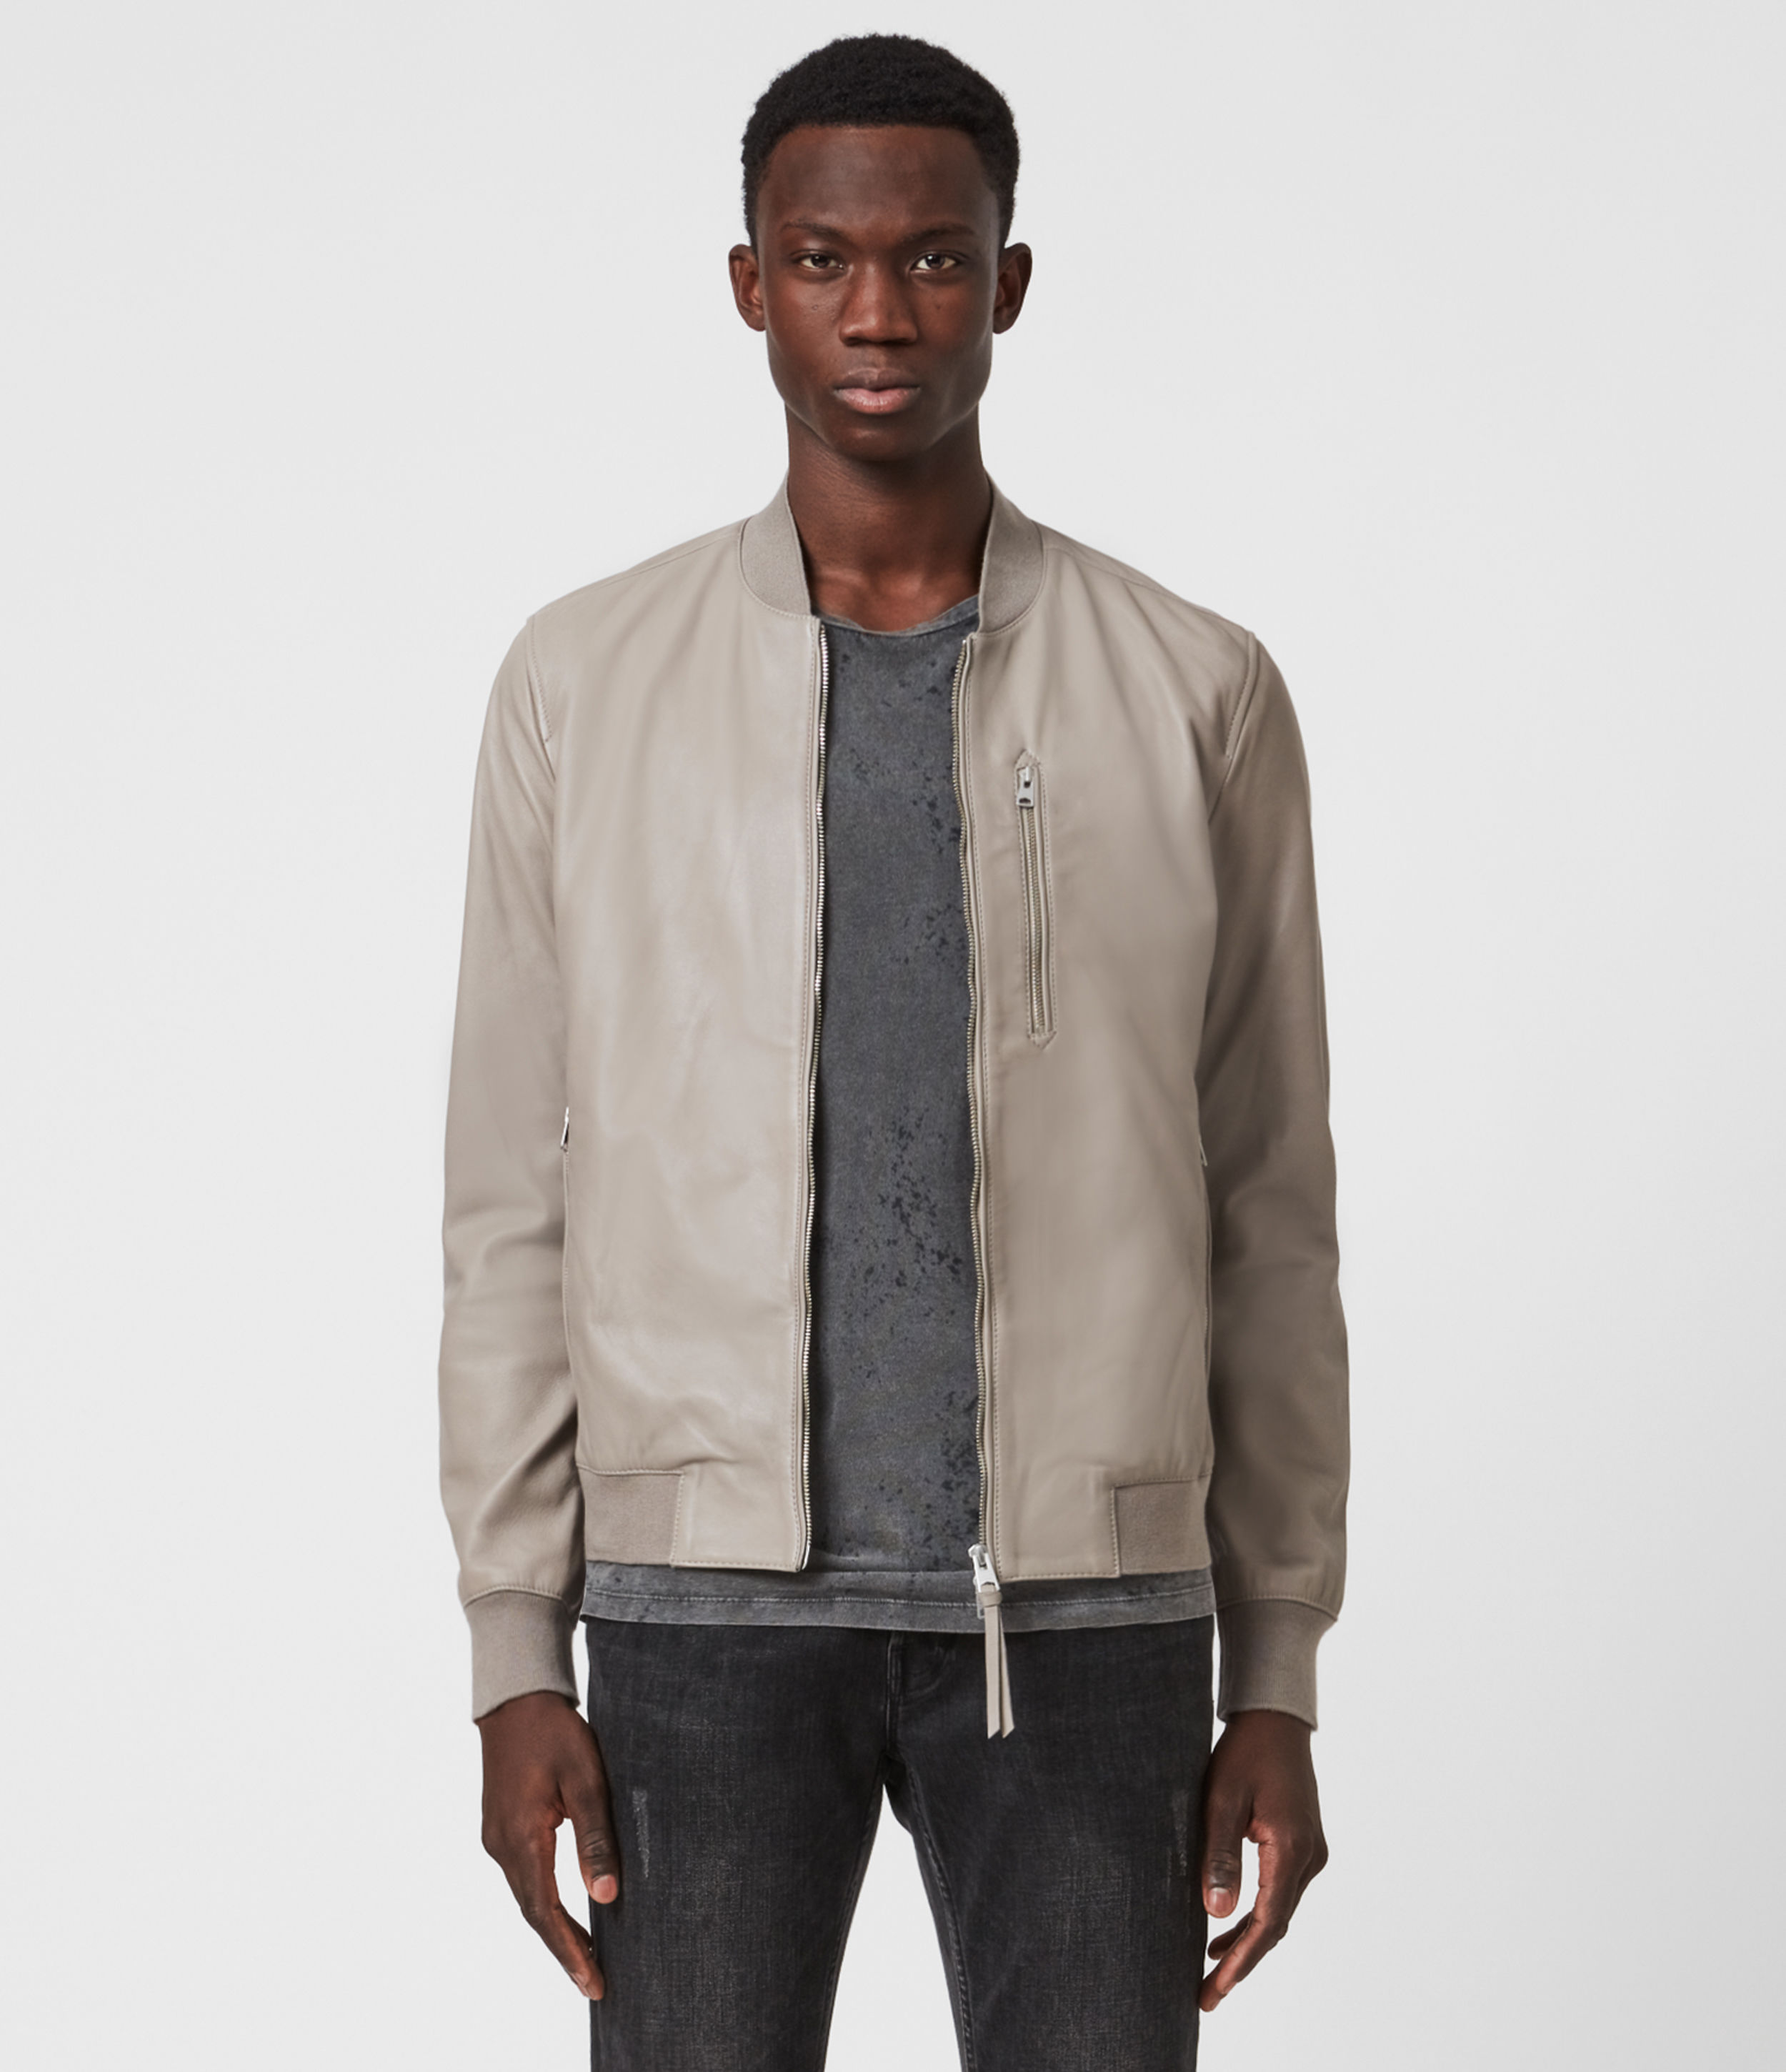 AllSaints Mens Kiro Leather Bomber Jacket, Gravel Grey, Size: XS